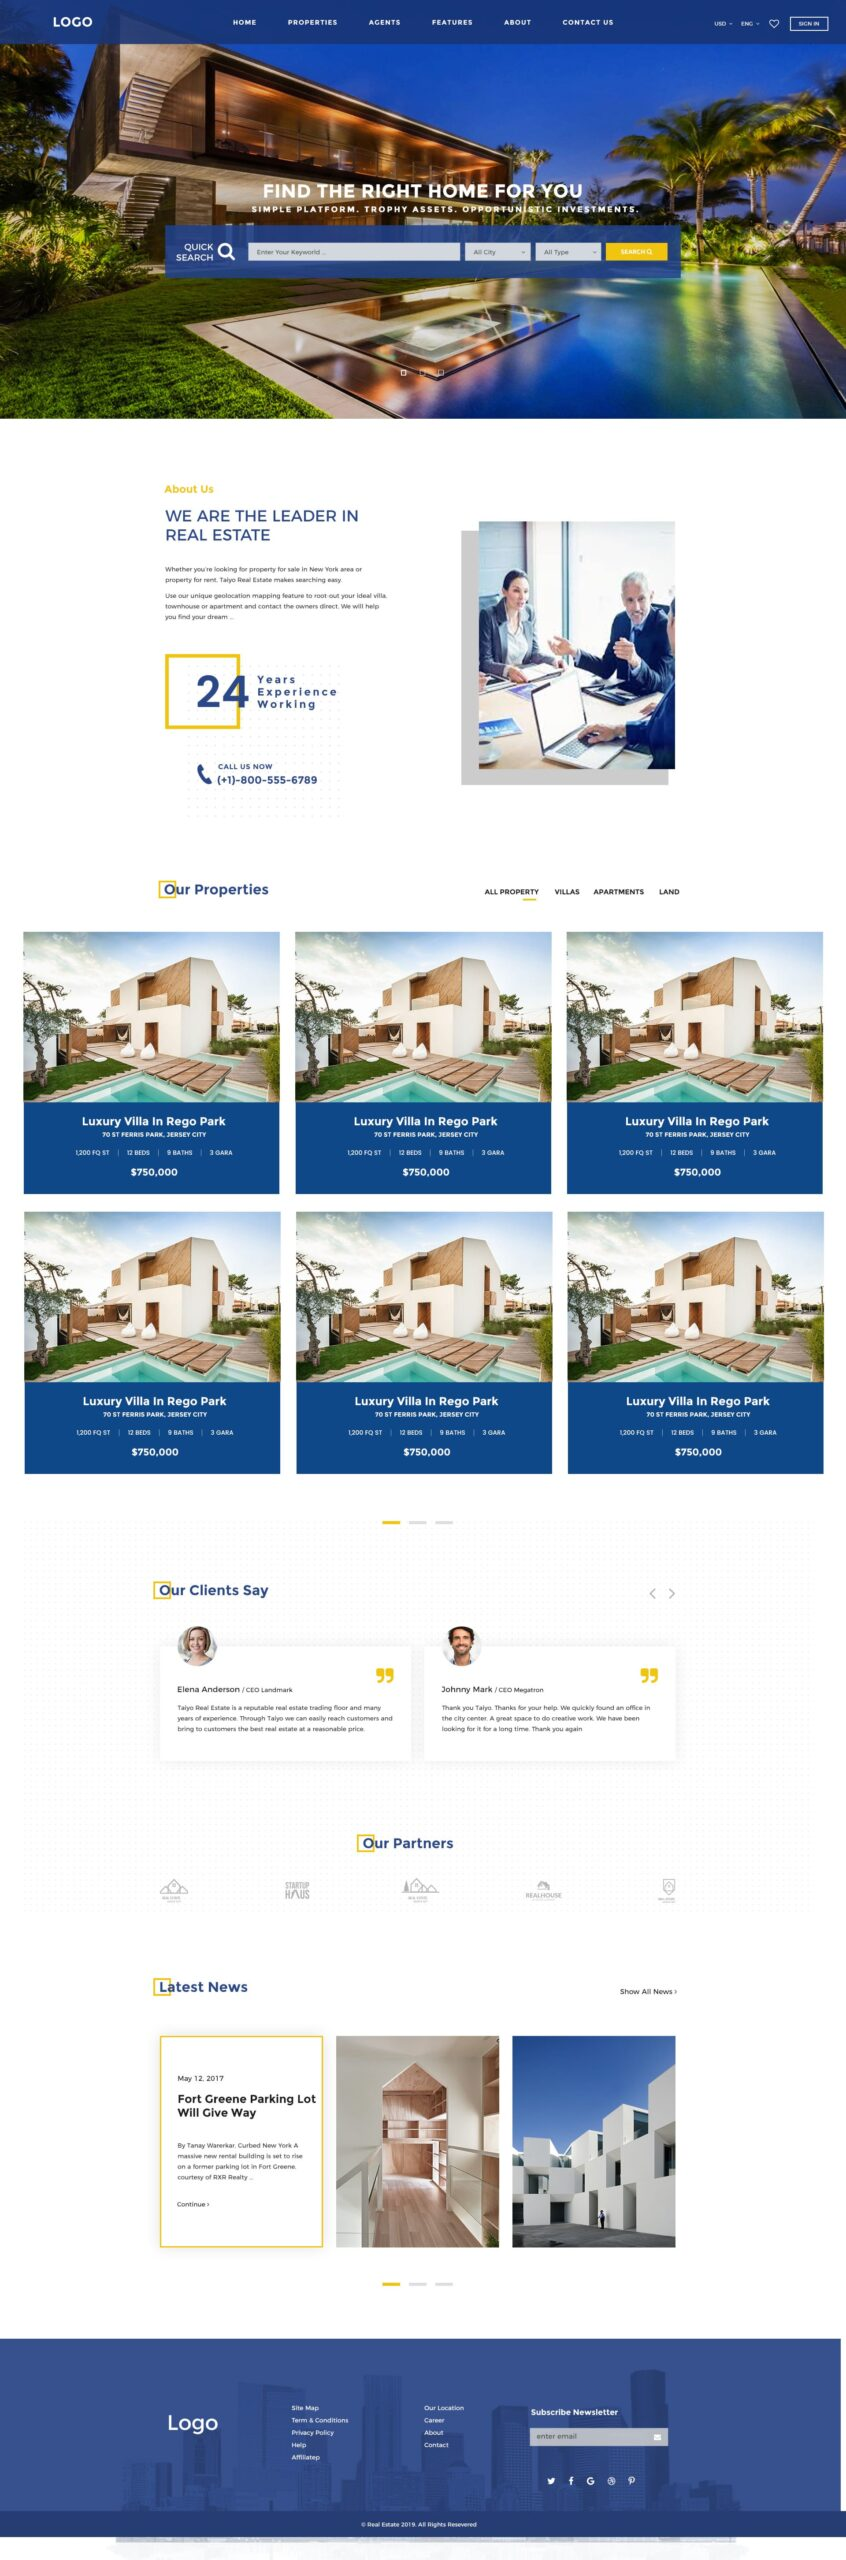 MLS Real Estate Website Design Agency